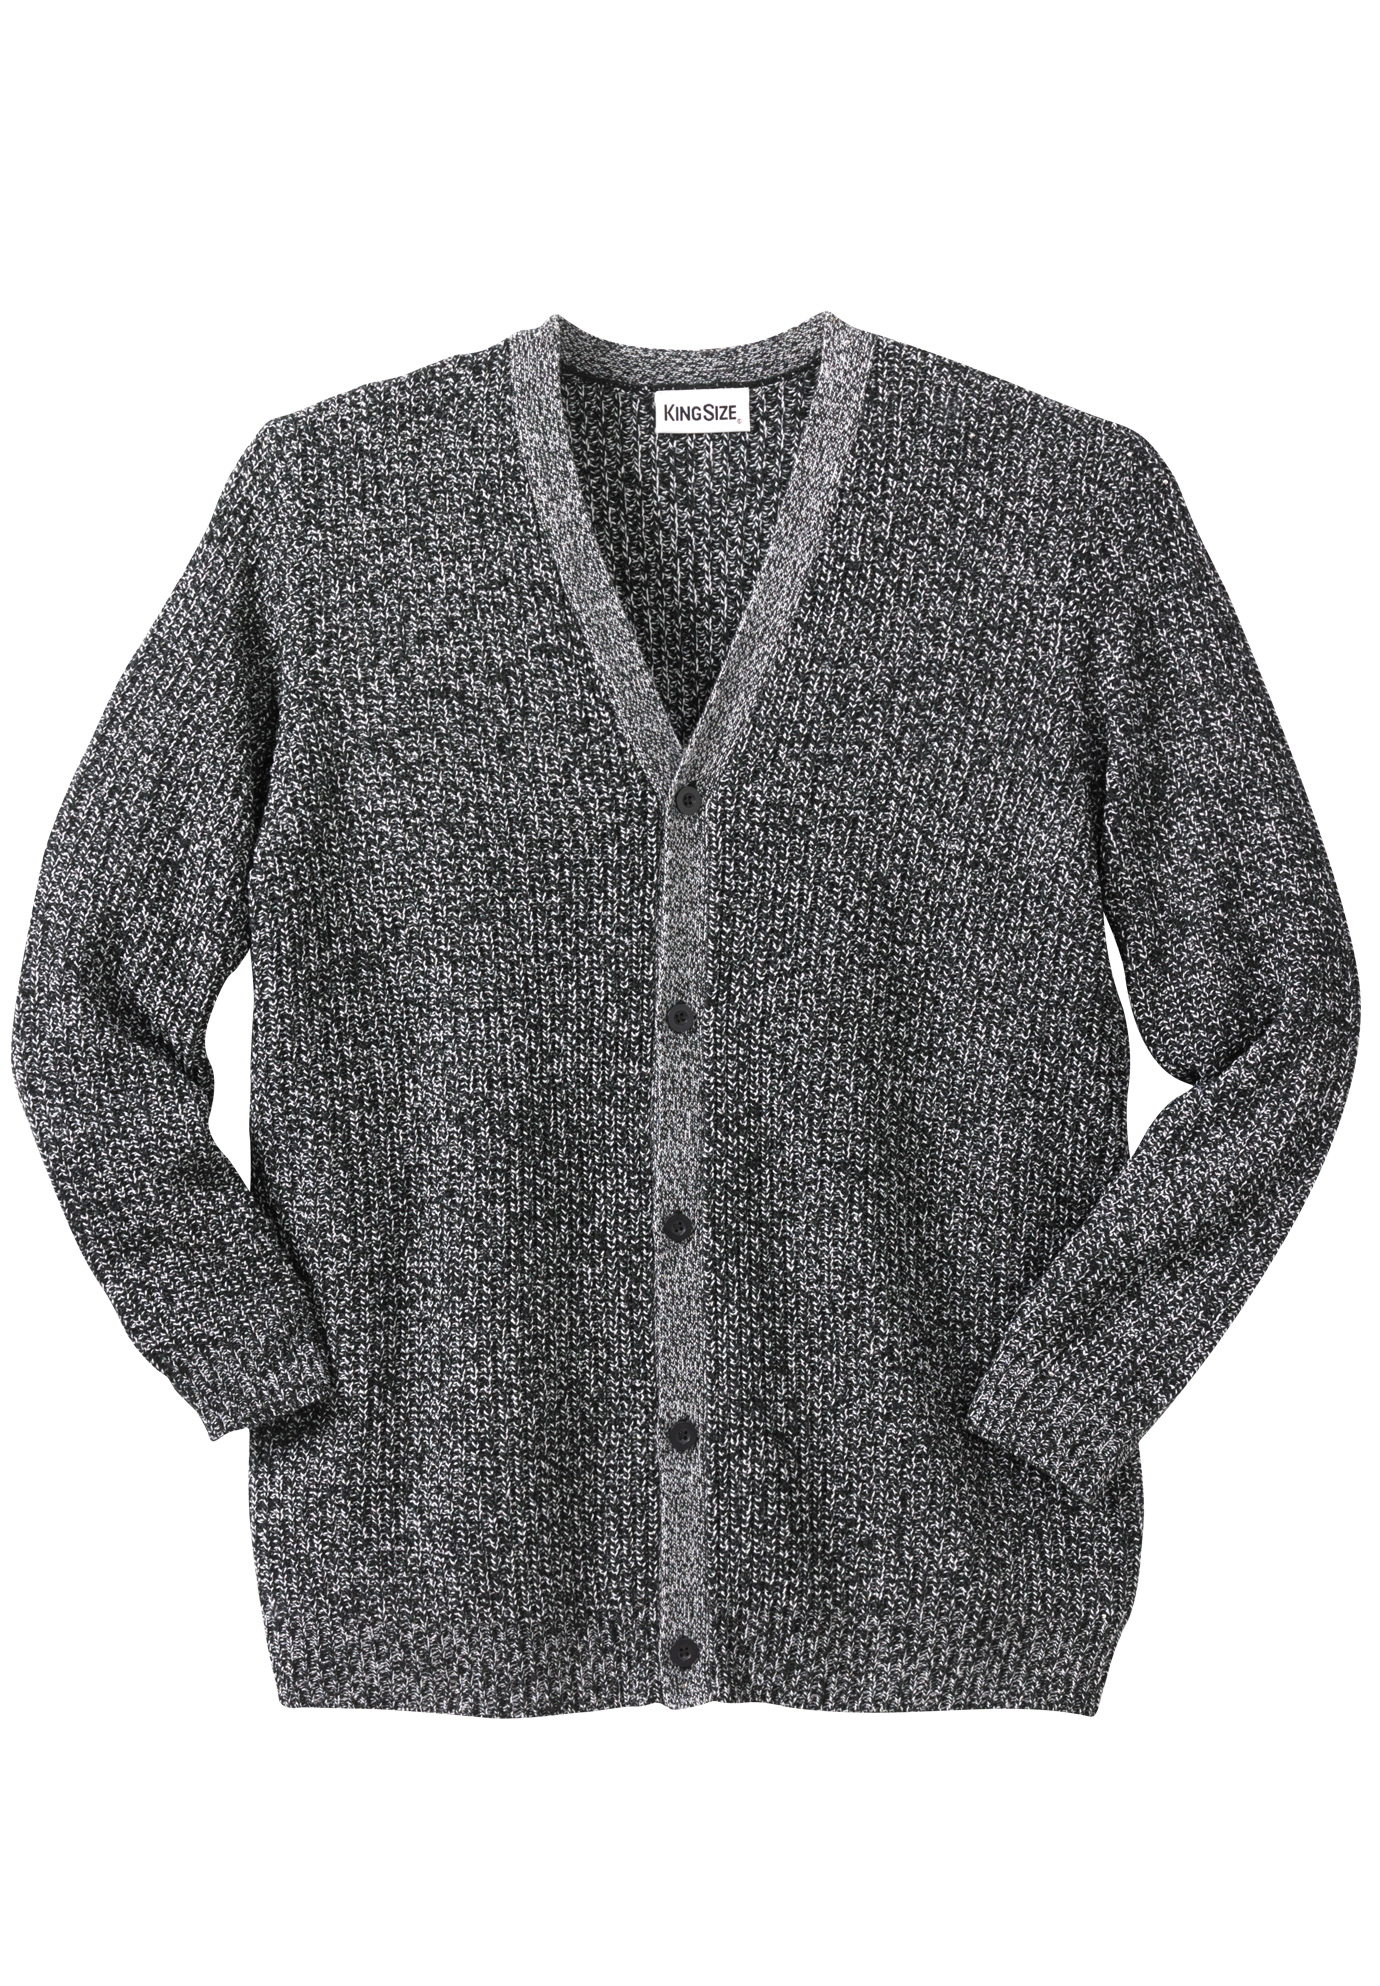 Shaker Knit V-Neck Cardigan Sweater,